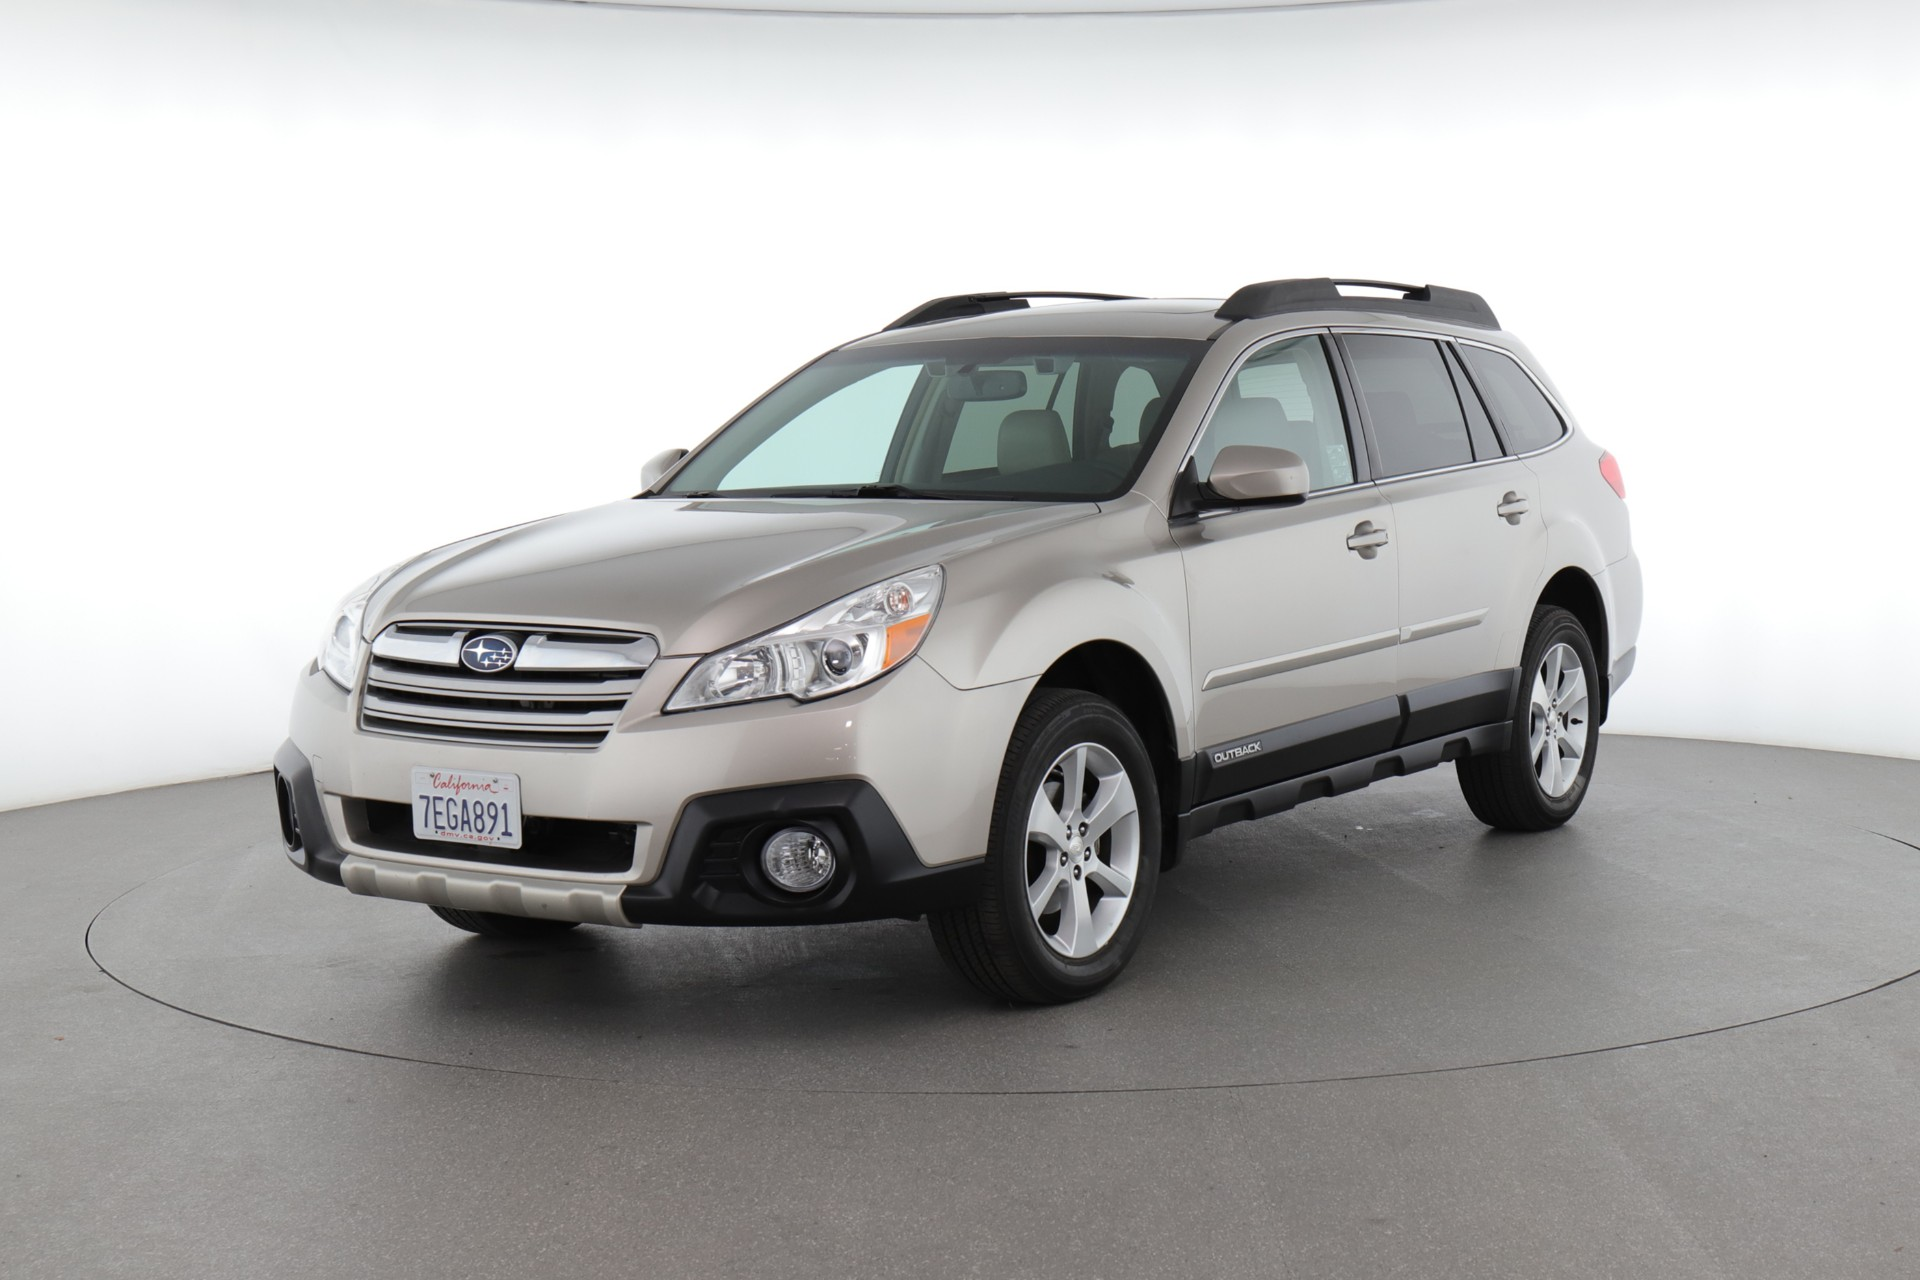 Subaru Outback 2.5i Limited (from $20,300)